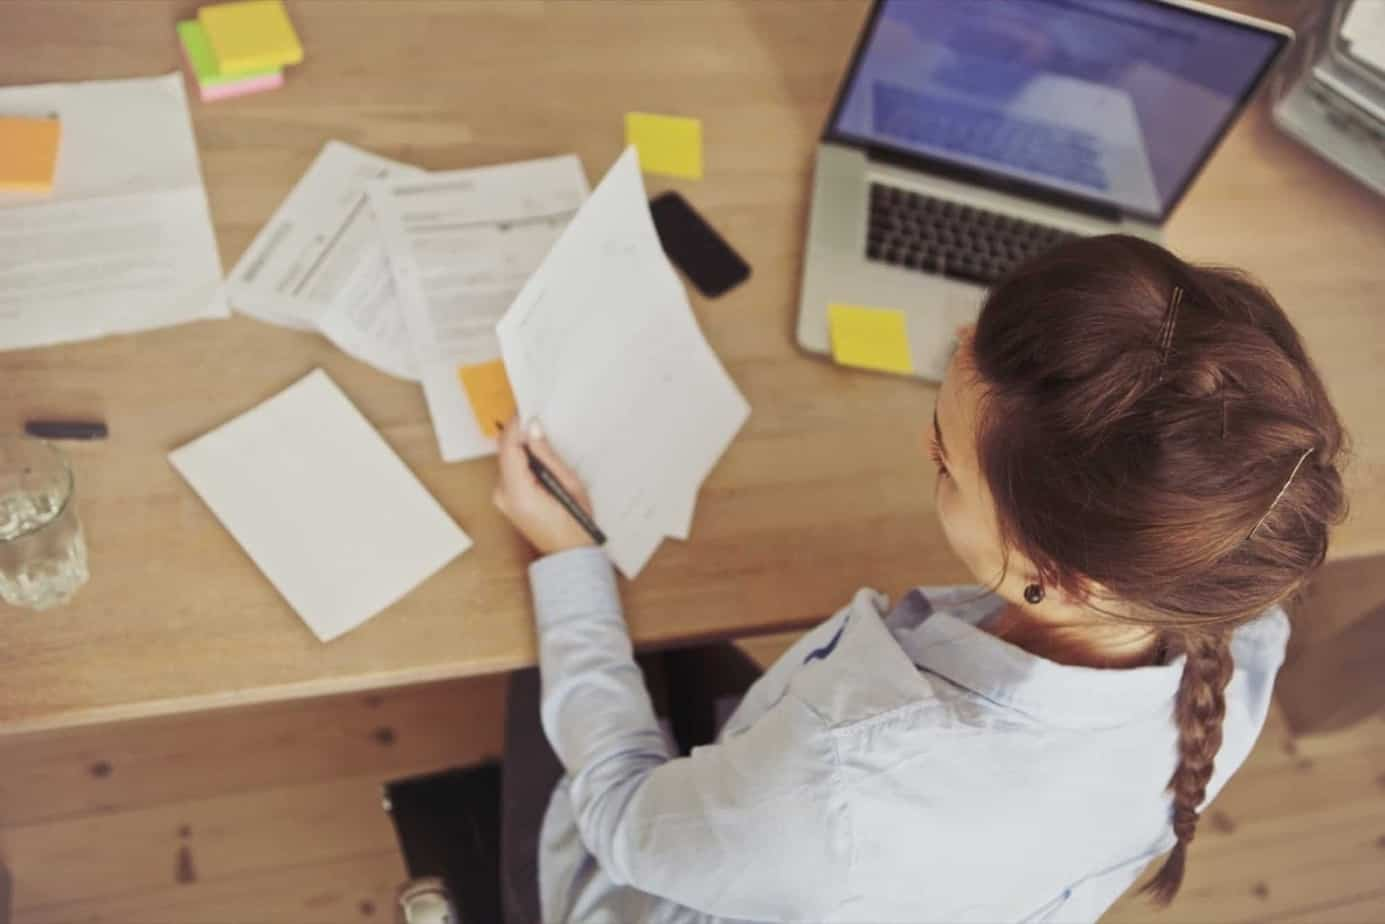 Business Writing Small Business Ideas For Women